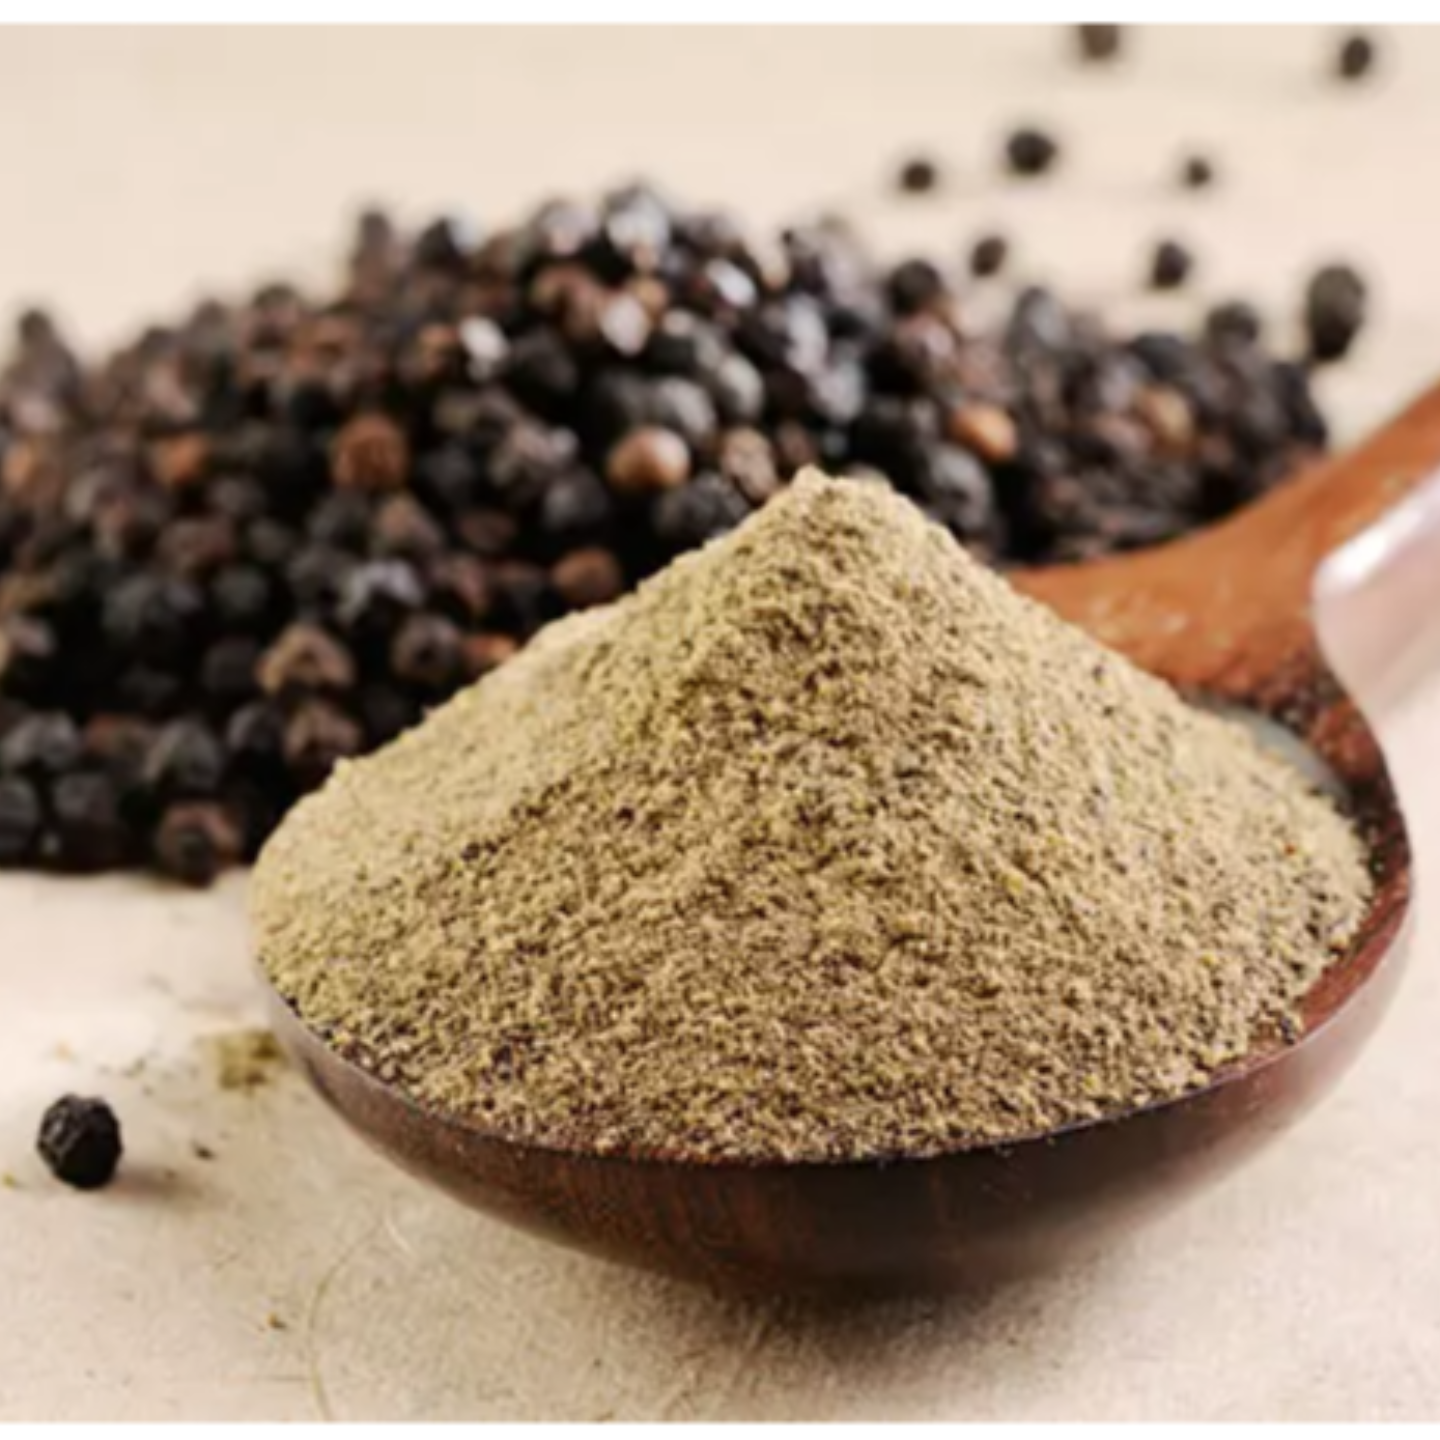 BLACK PEPPER POWDER - 100Gms Glass Bottle